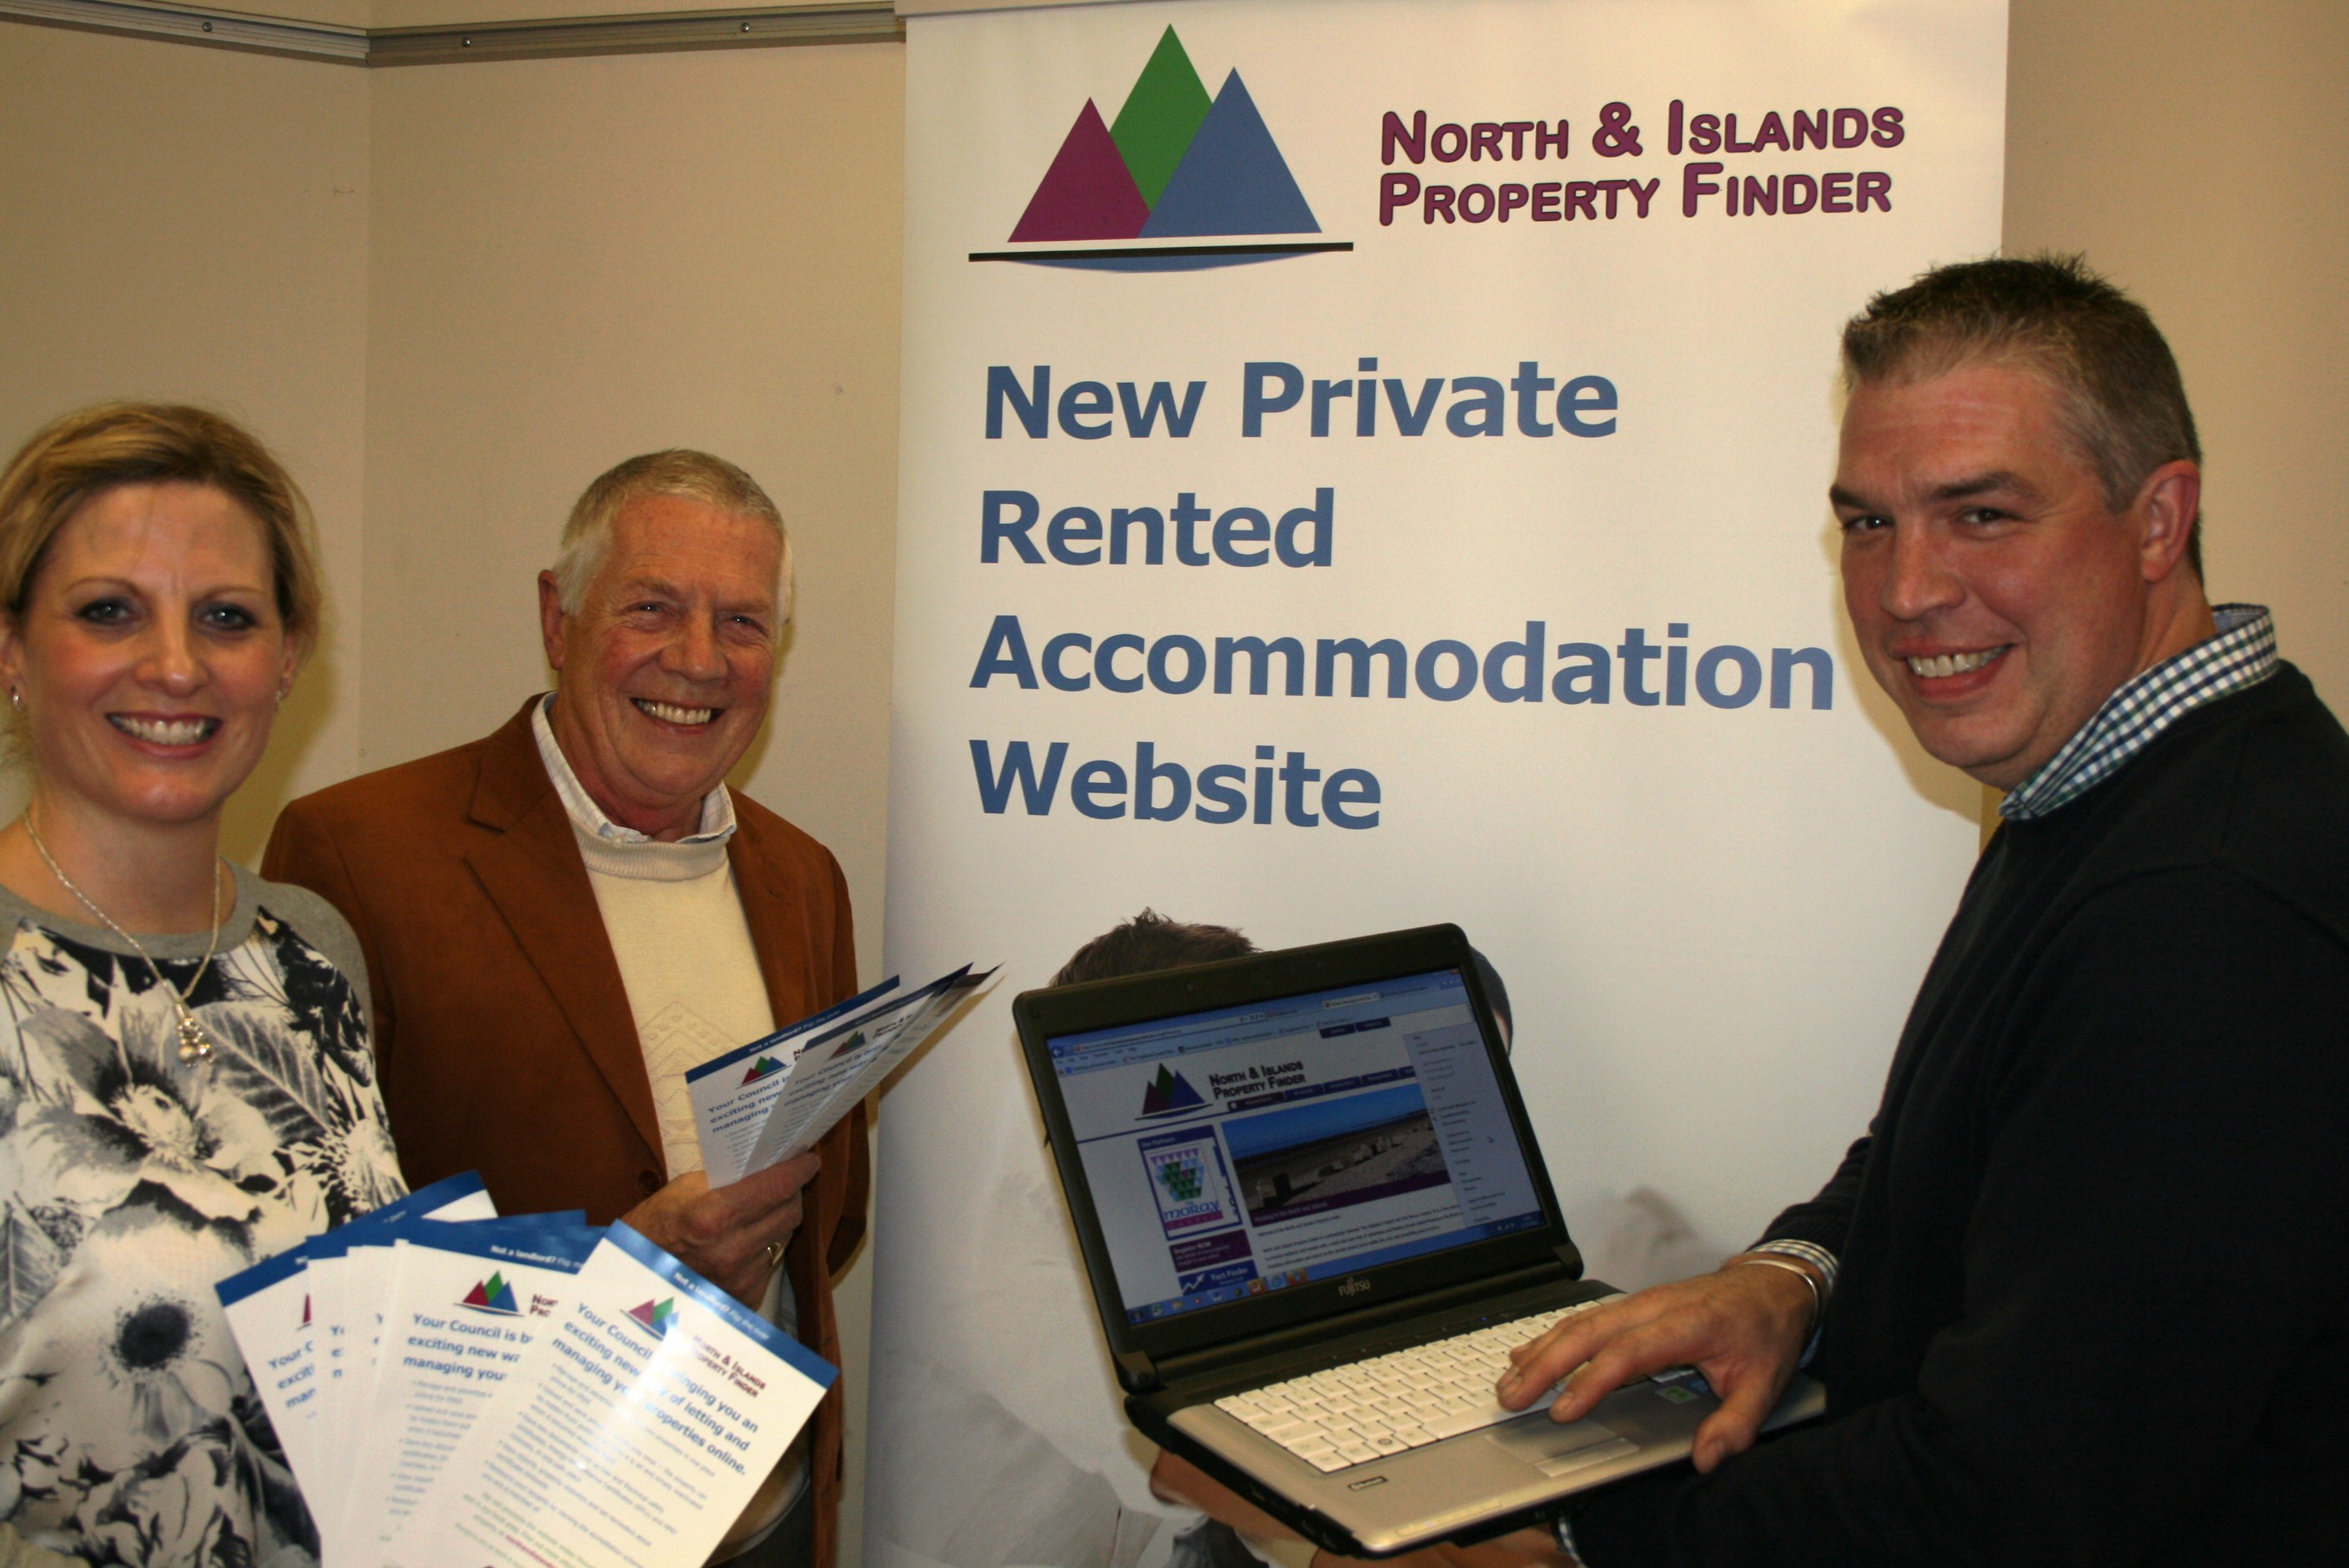 property finder launch photo